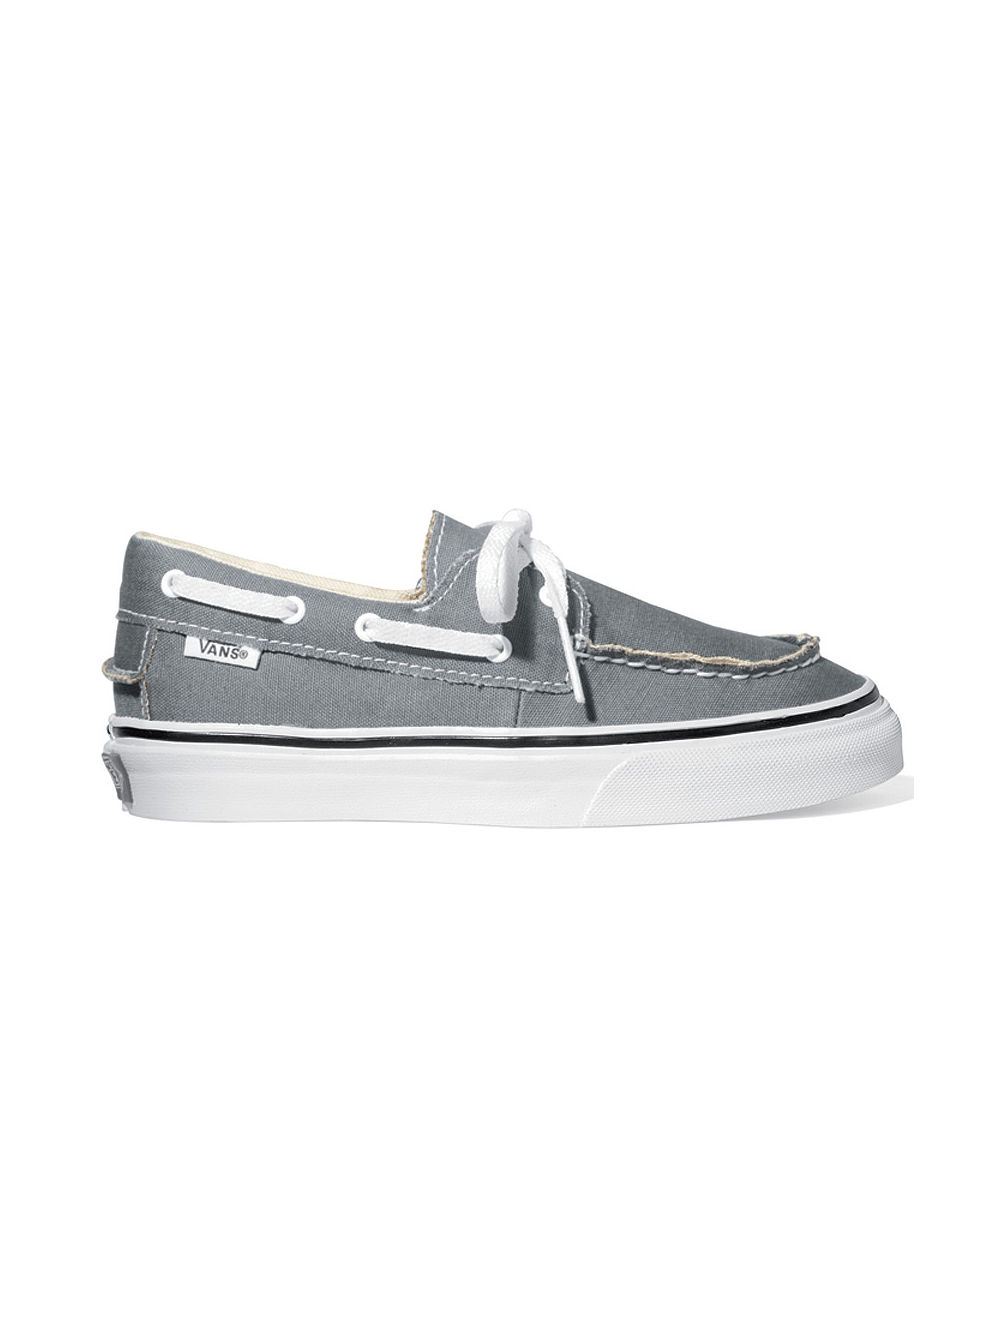 0bb1b553f3b Buy Vans Zapato Del Barco Youth online at blue-tomato.com